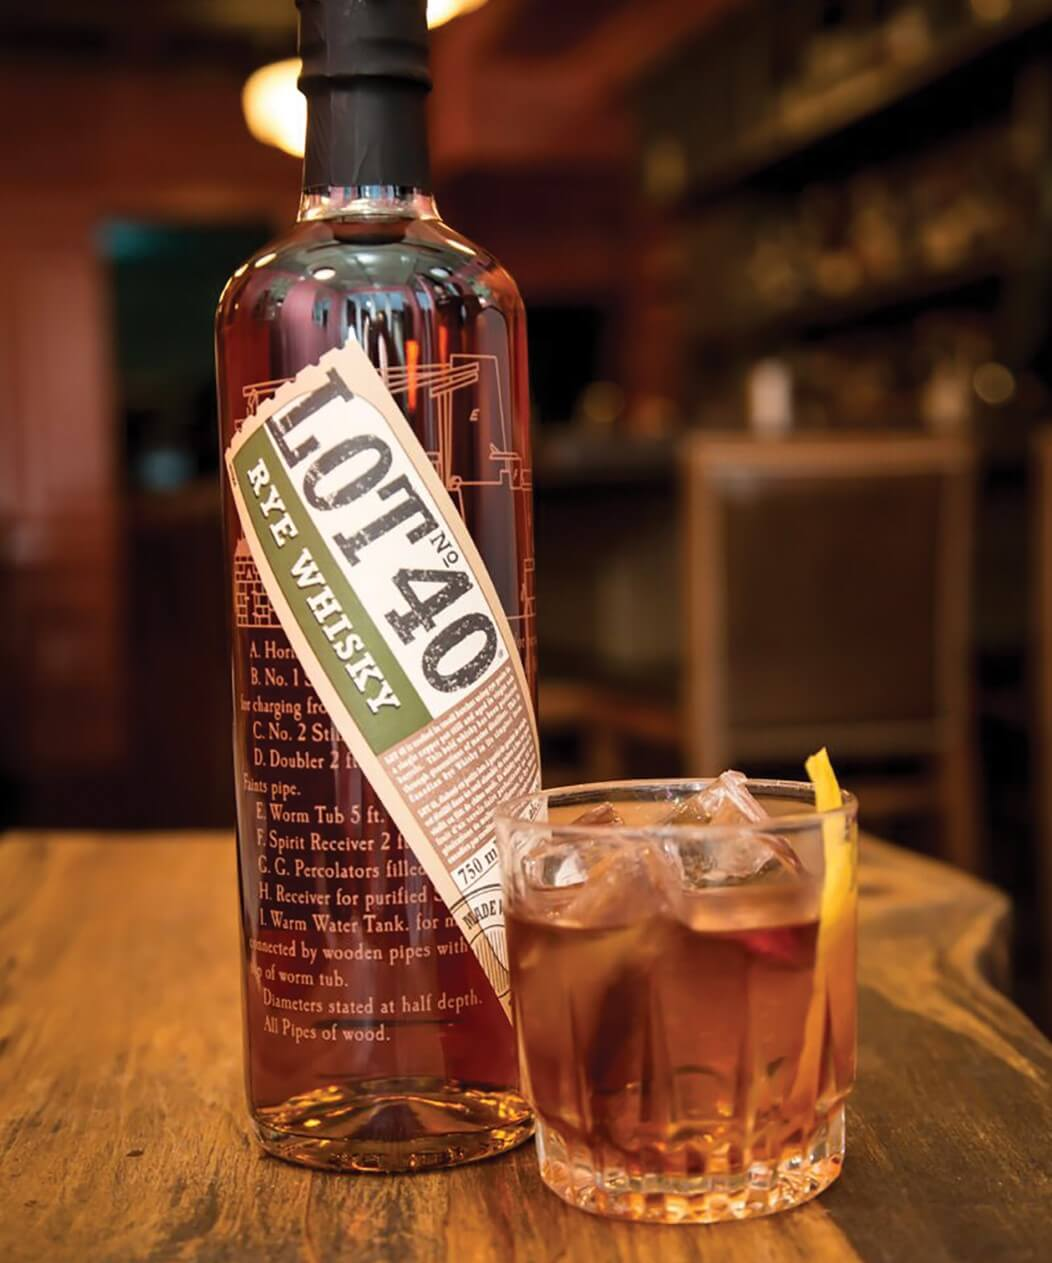 A bottle and serving of Lot 40